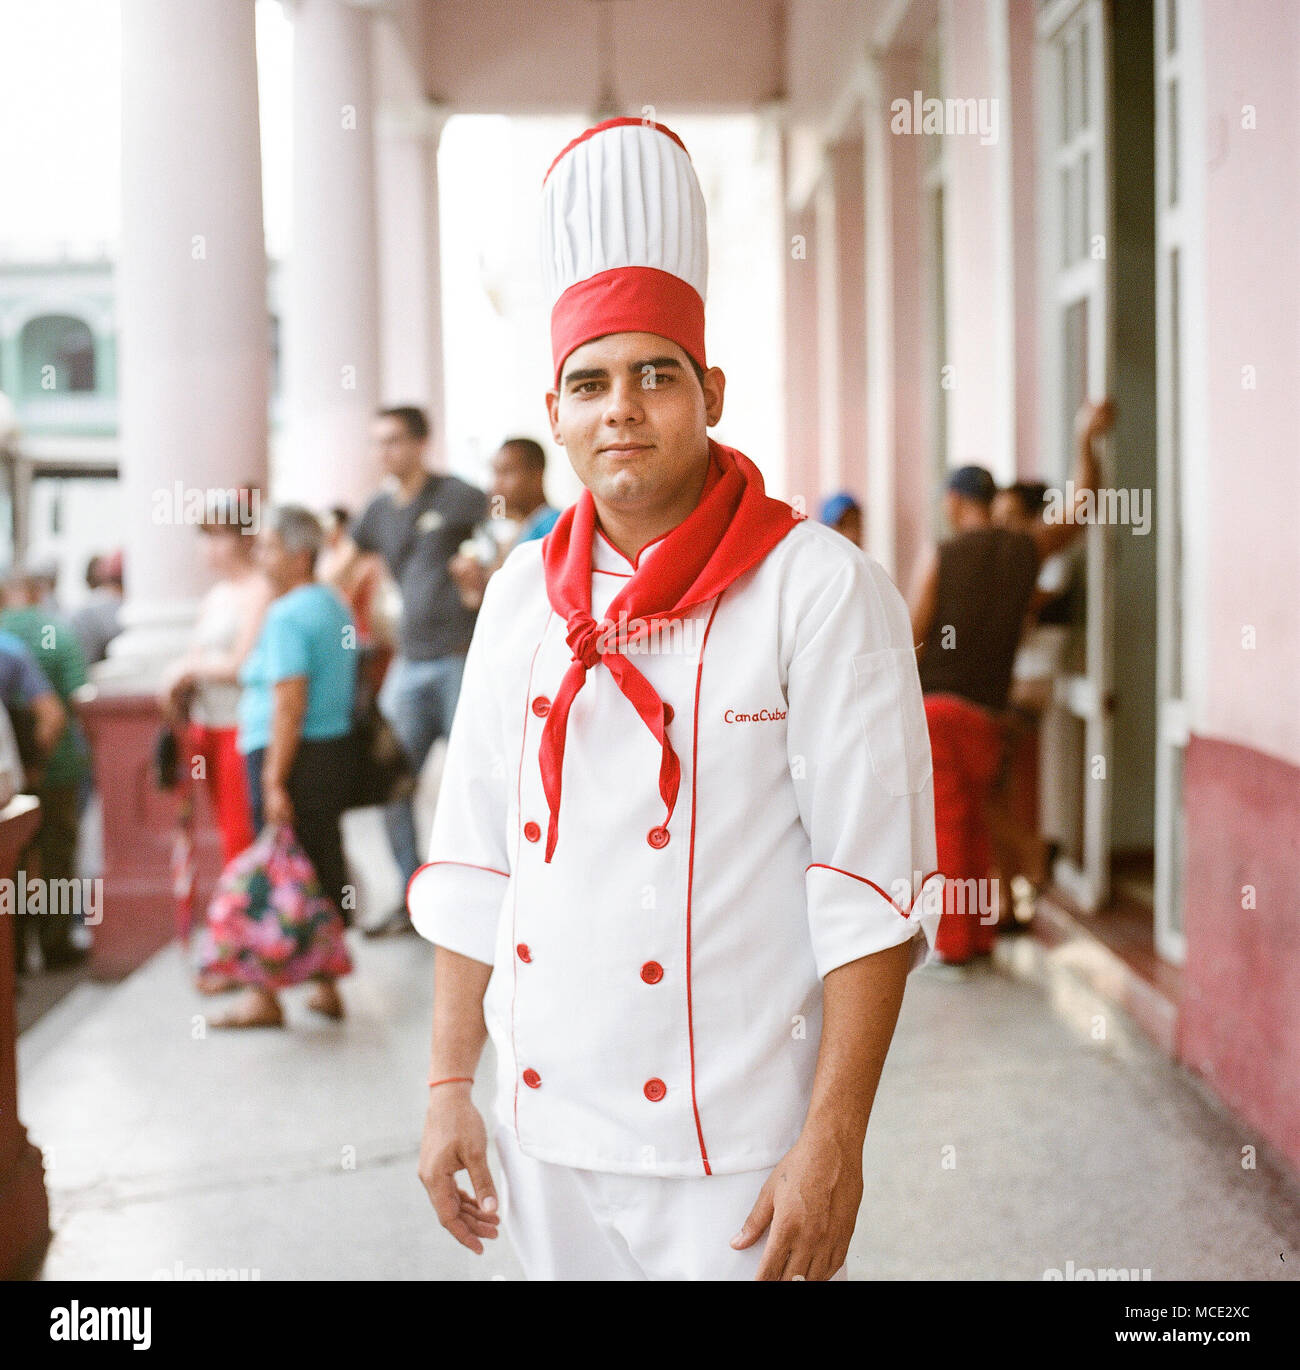 A chef at the cafeteria Canacuba poses for a portrait in the main square of Santa Clara, Cuba on Wednesday, December 3, 2015. The name of the cafeteria 'Canacuba' references Canada. Canada is very respected by Cubans, as it was one of the few countries not to break relations with Cuba following the revolution in 1959. - Stock Image